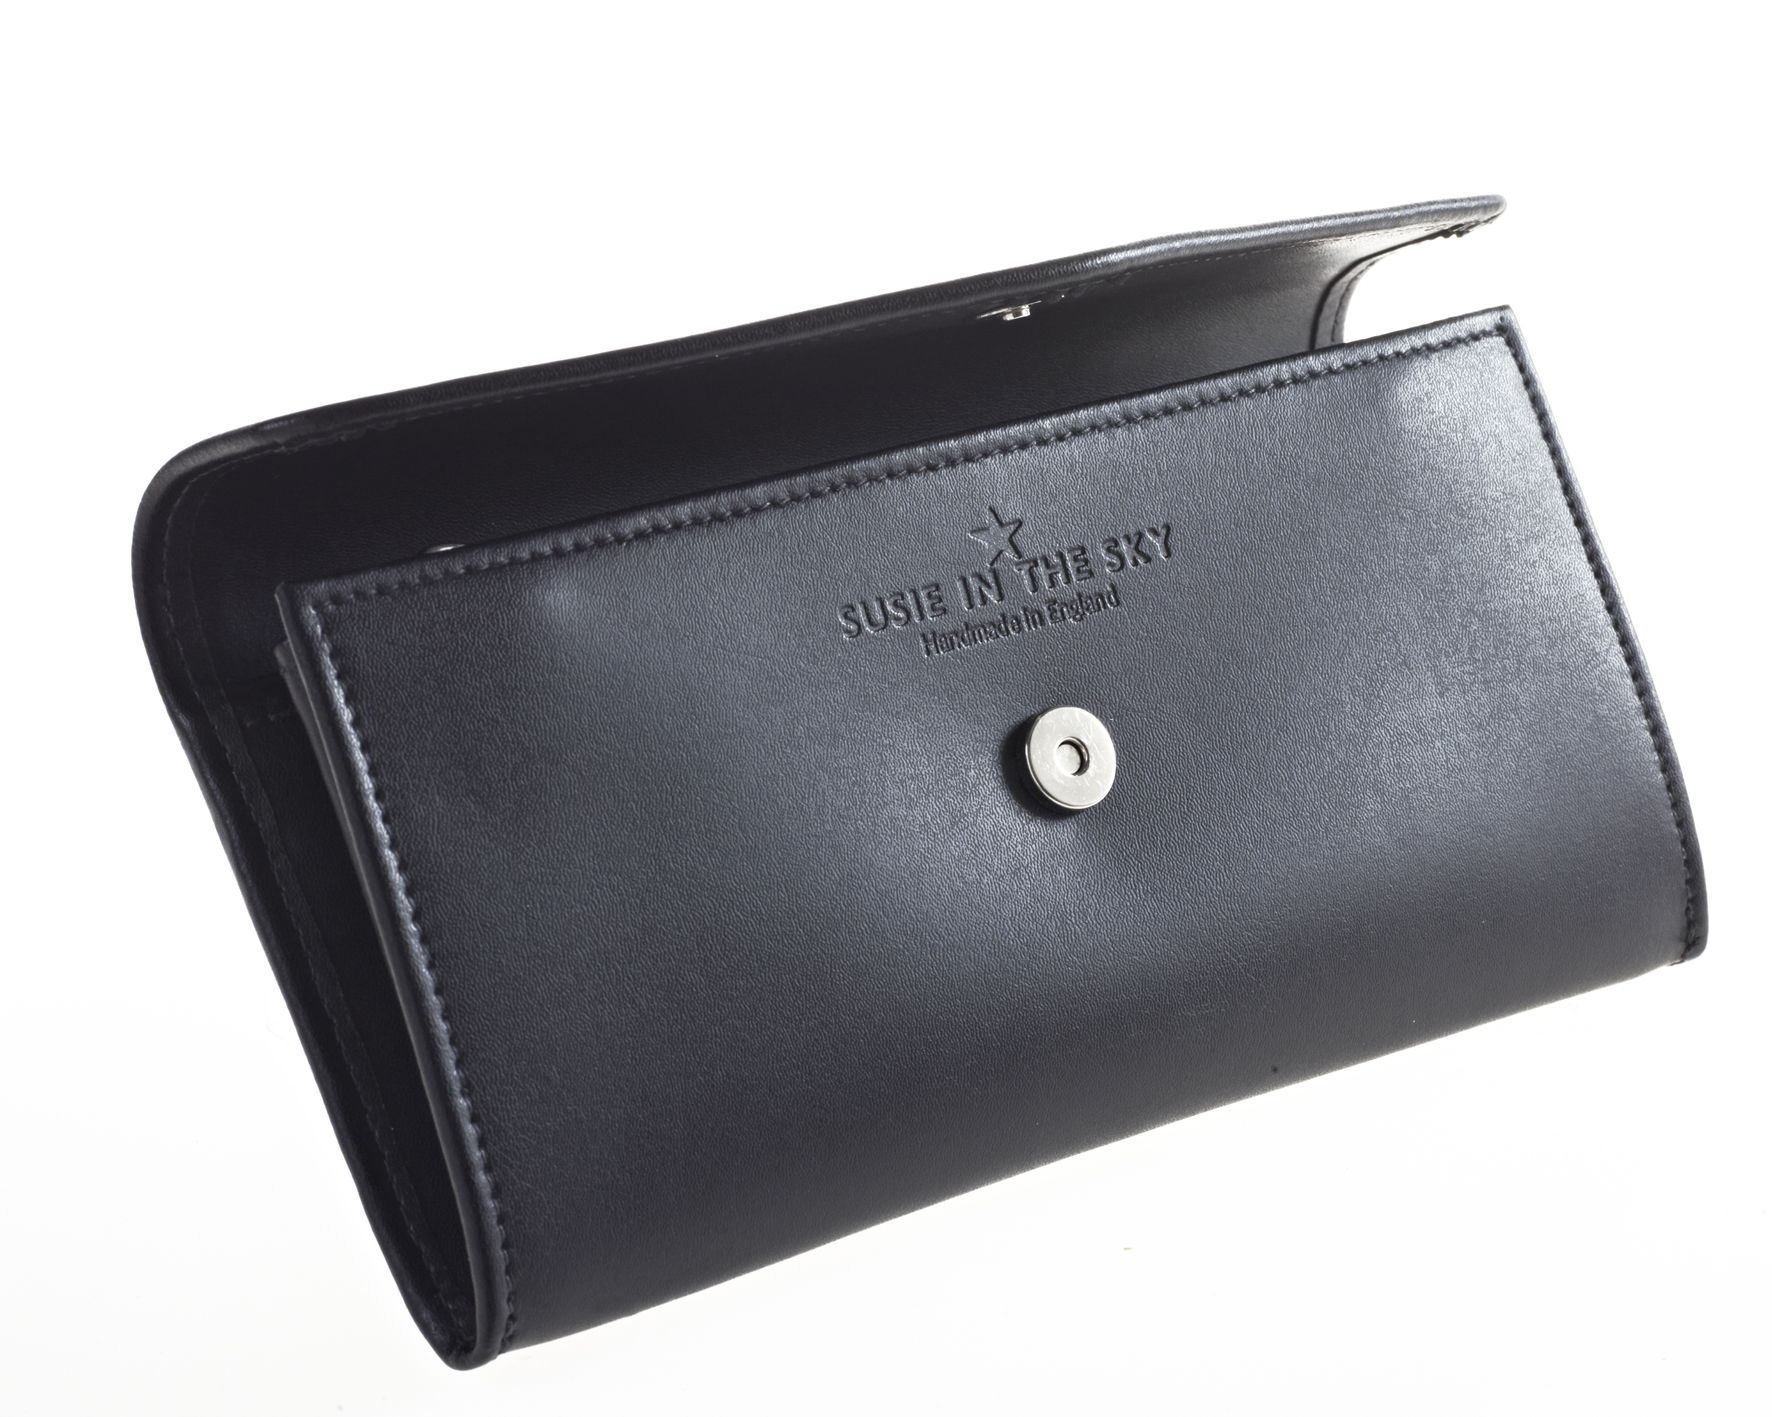 Lyst Susie In The Sky Lily Wallet Black In Black